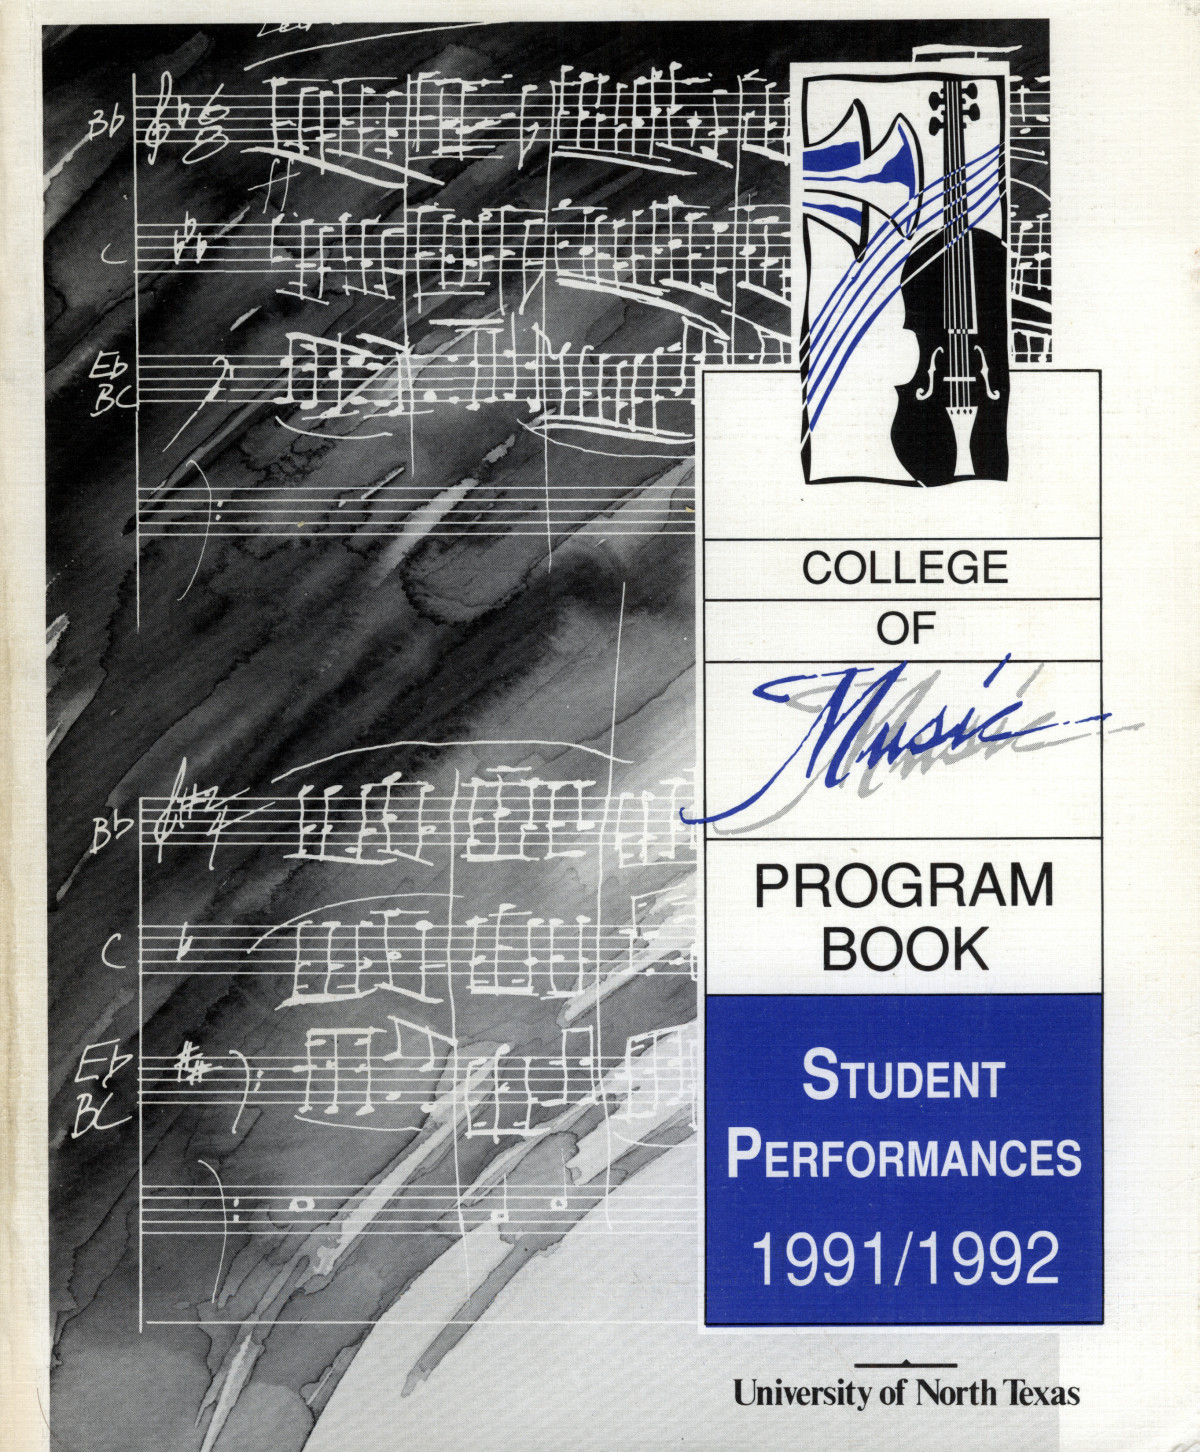 College of Music program book 1991-1992 Student Performances Vol. 2                                                                                                      [Sequence #]: 1 of 310